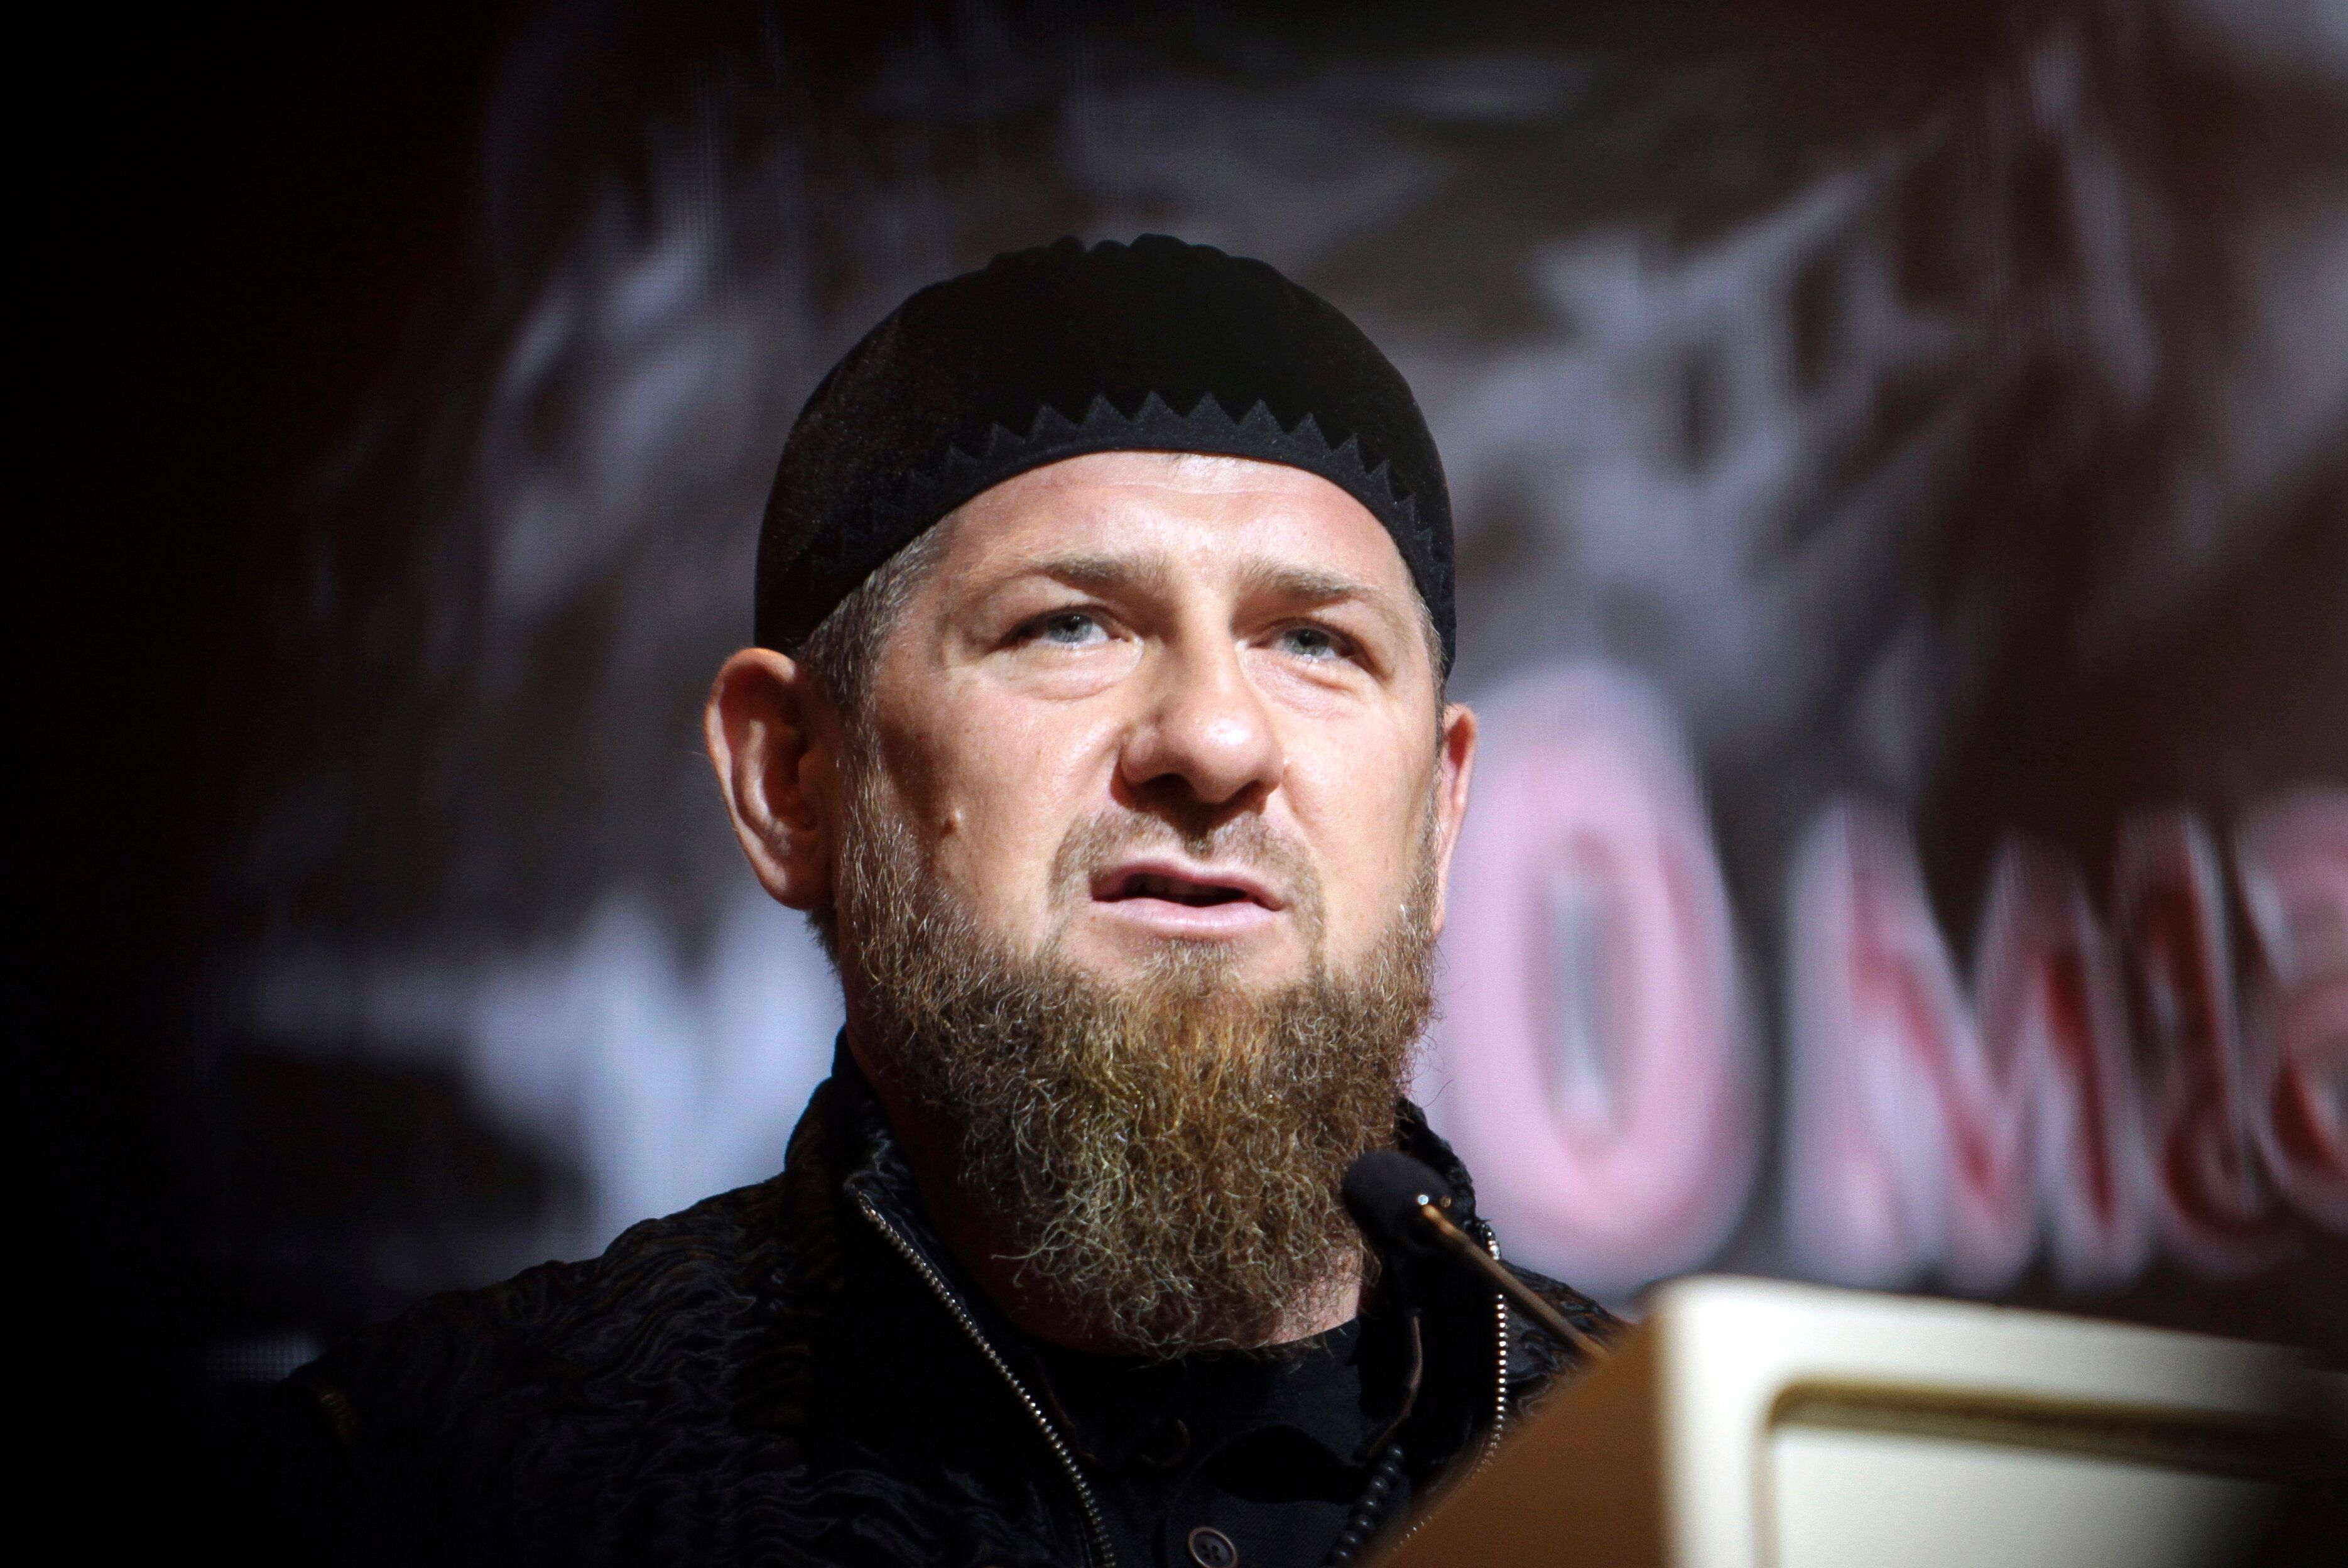 Fox News Us Sanctions Strongman Ruler Of Russia S Chechnya Over Human Rights Violations Chechnya Strongman Human